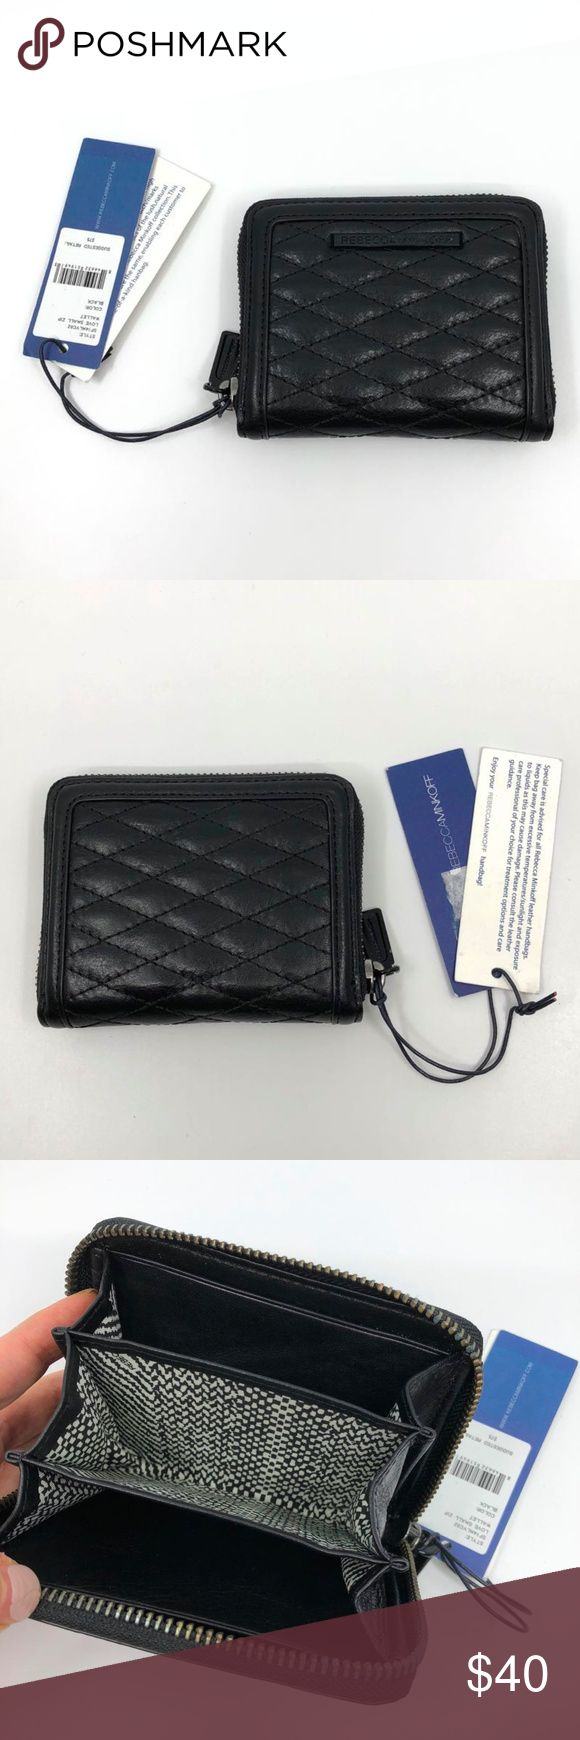 "RARE Rebecca Minkoff Love Small Zip Wallet Blk x 2 NWT Rebecca Minkoff Love Small Zip Wallet in Black Leather with BLACK HARDWARE (<- rare part.) $75 MSRP  The regular version comes with gold hardware; this one is more understated/reminiscent of Chanel's So Black Boy bag. (Zipper teeth are dark neutral color.)  Quilted leather brings luxe edge to this zippered Rebecca Minkoff wallet.   - Lined interior with accordion gussets, 3 compartments, and 2 pockets. - Leather: Cowhide. - Approx. 4.75""…"